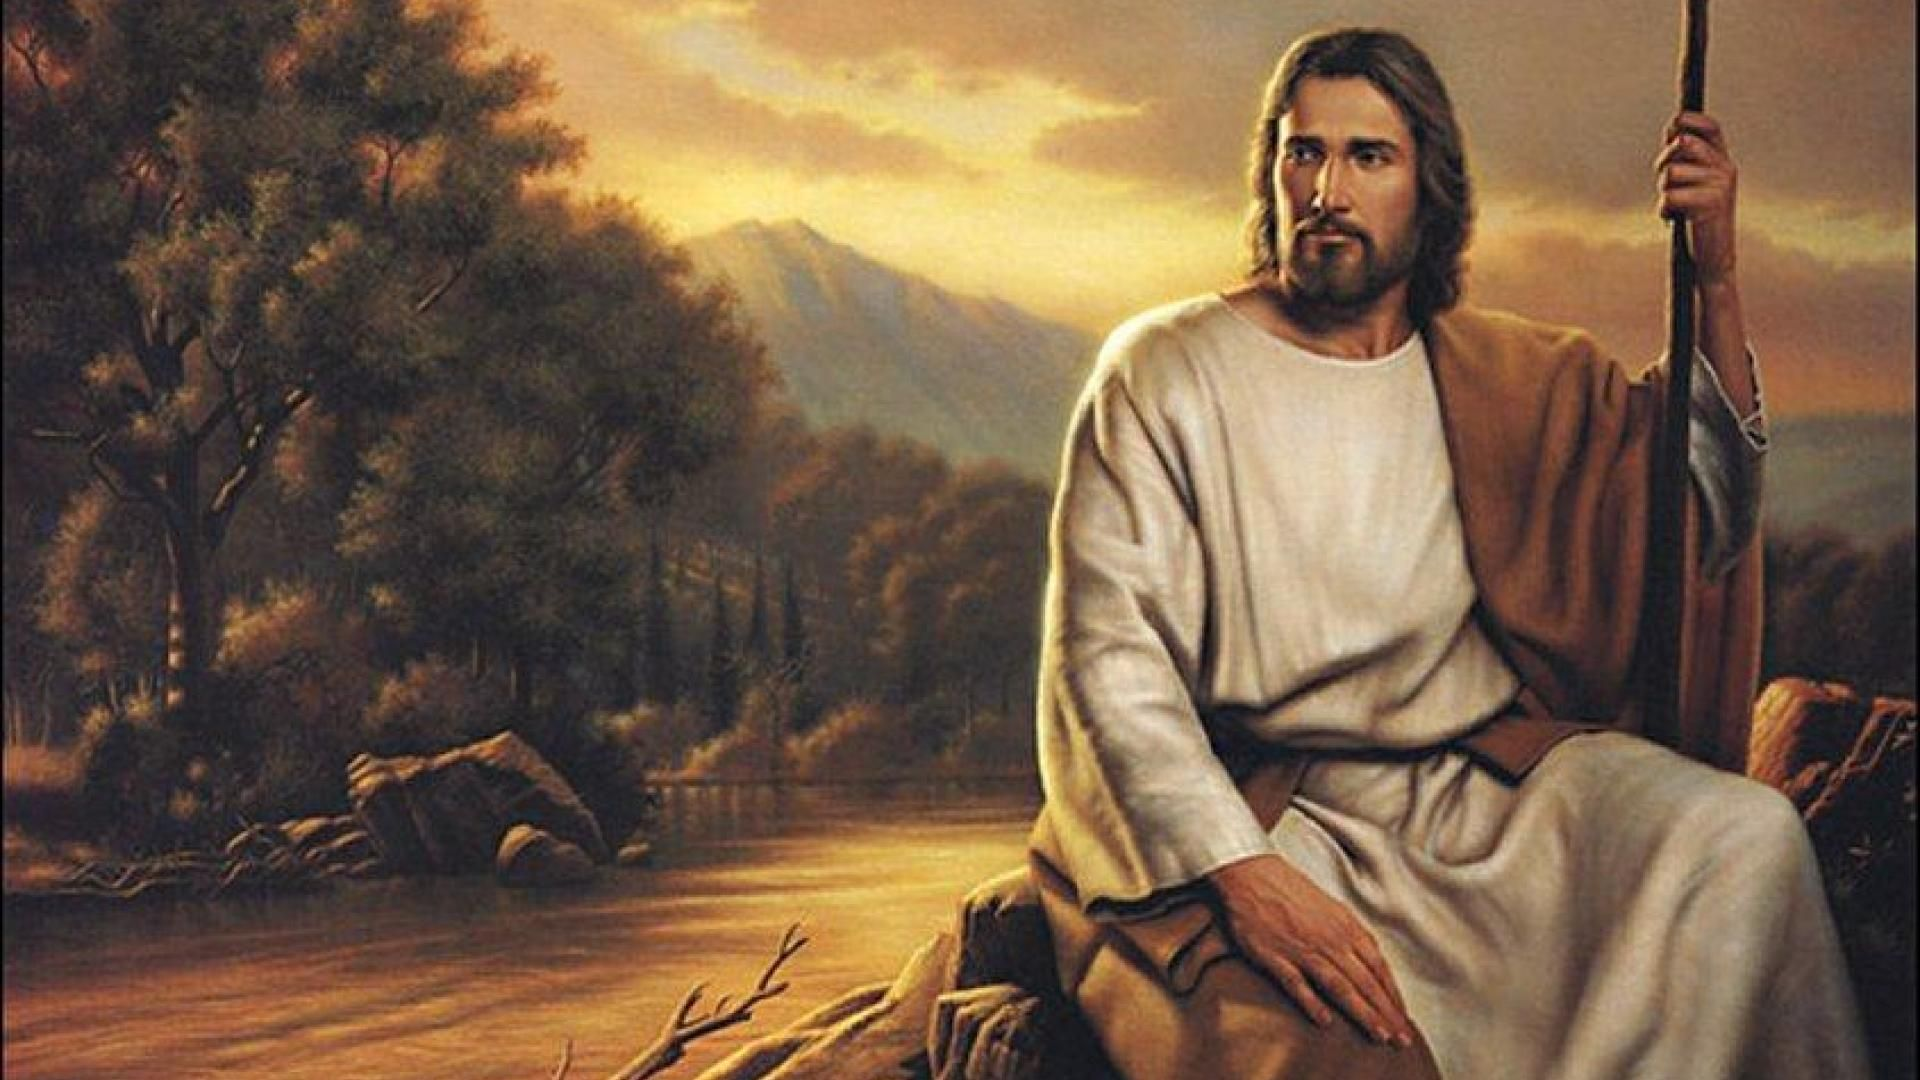 Jesus Hd Wallpaper Jesus Pictures For Background New Wallpapers